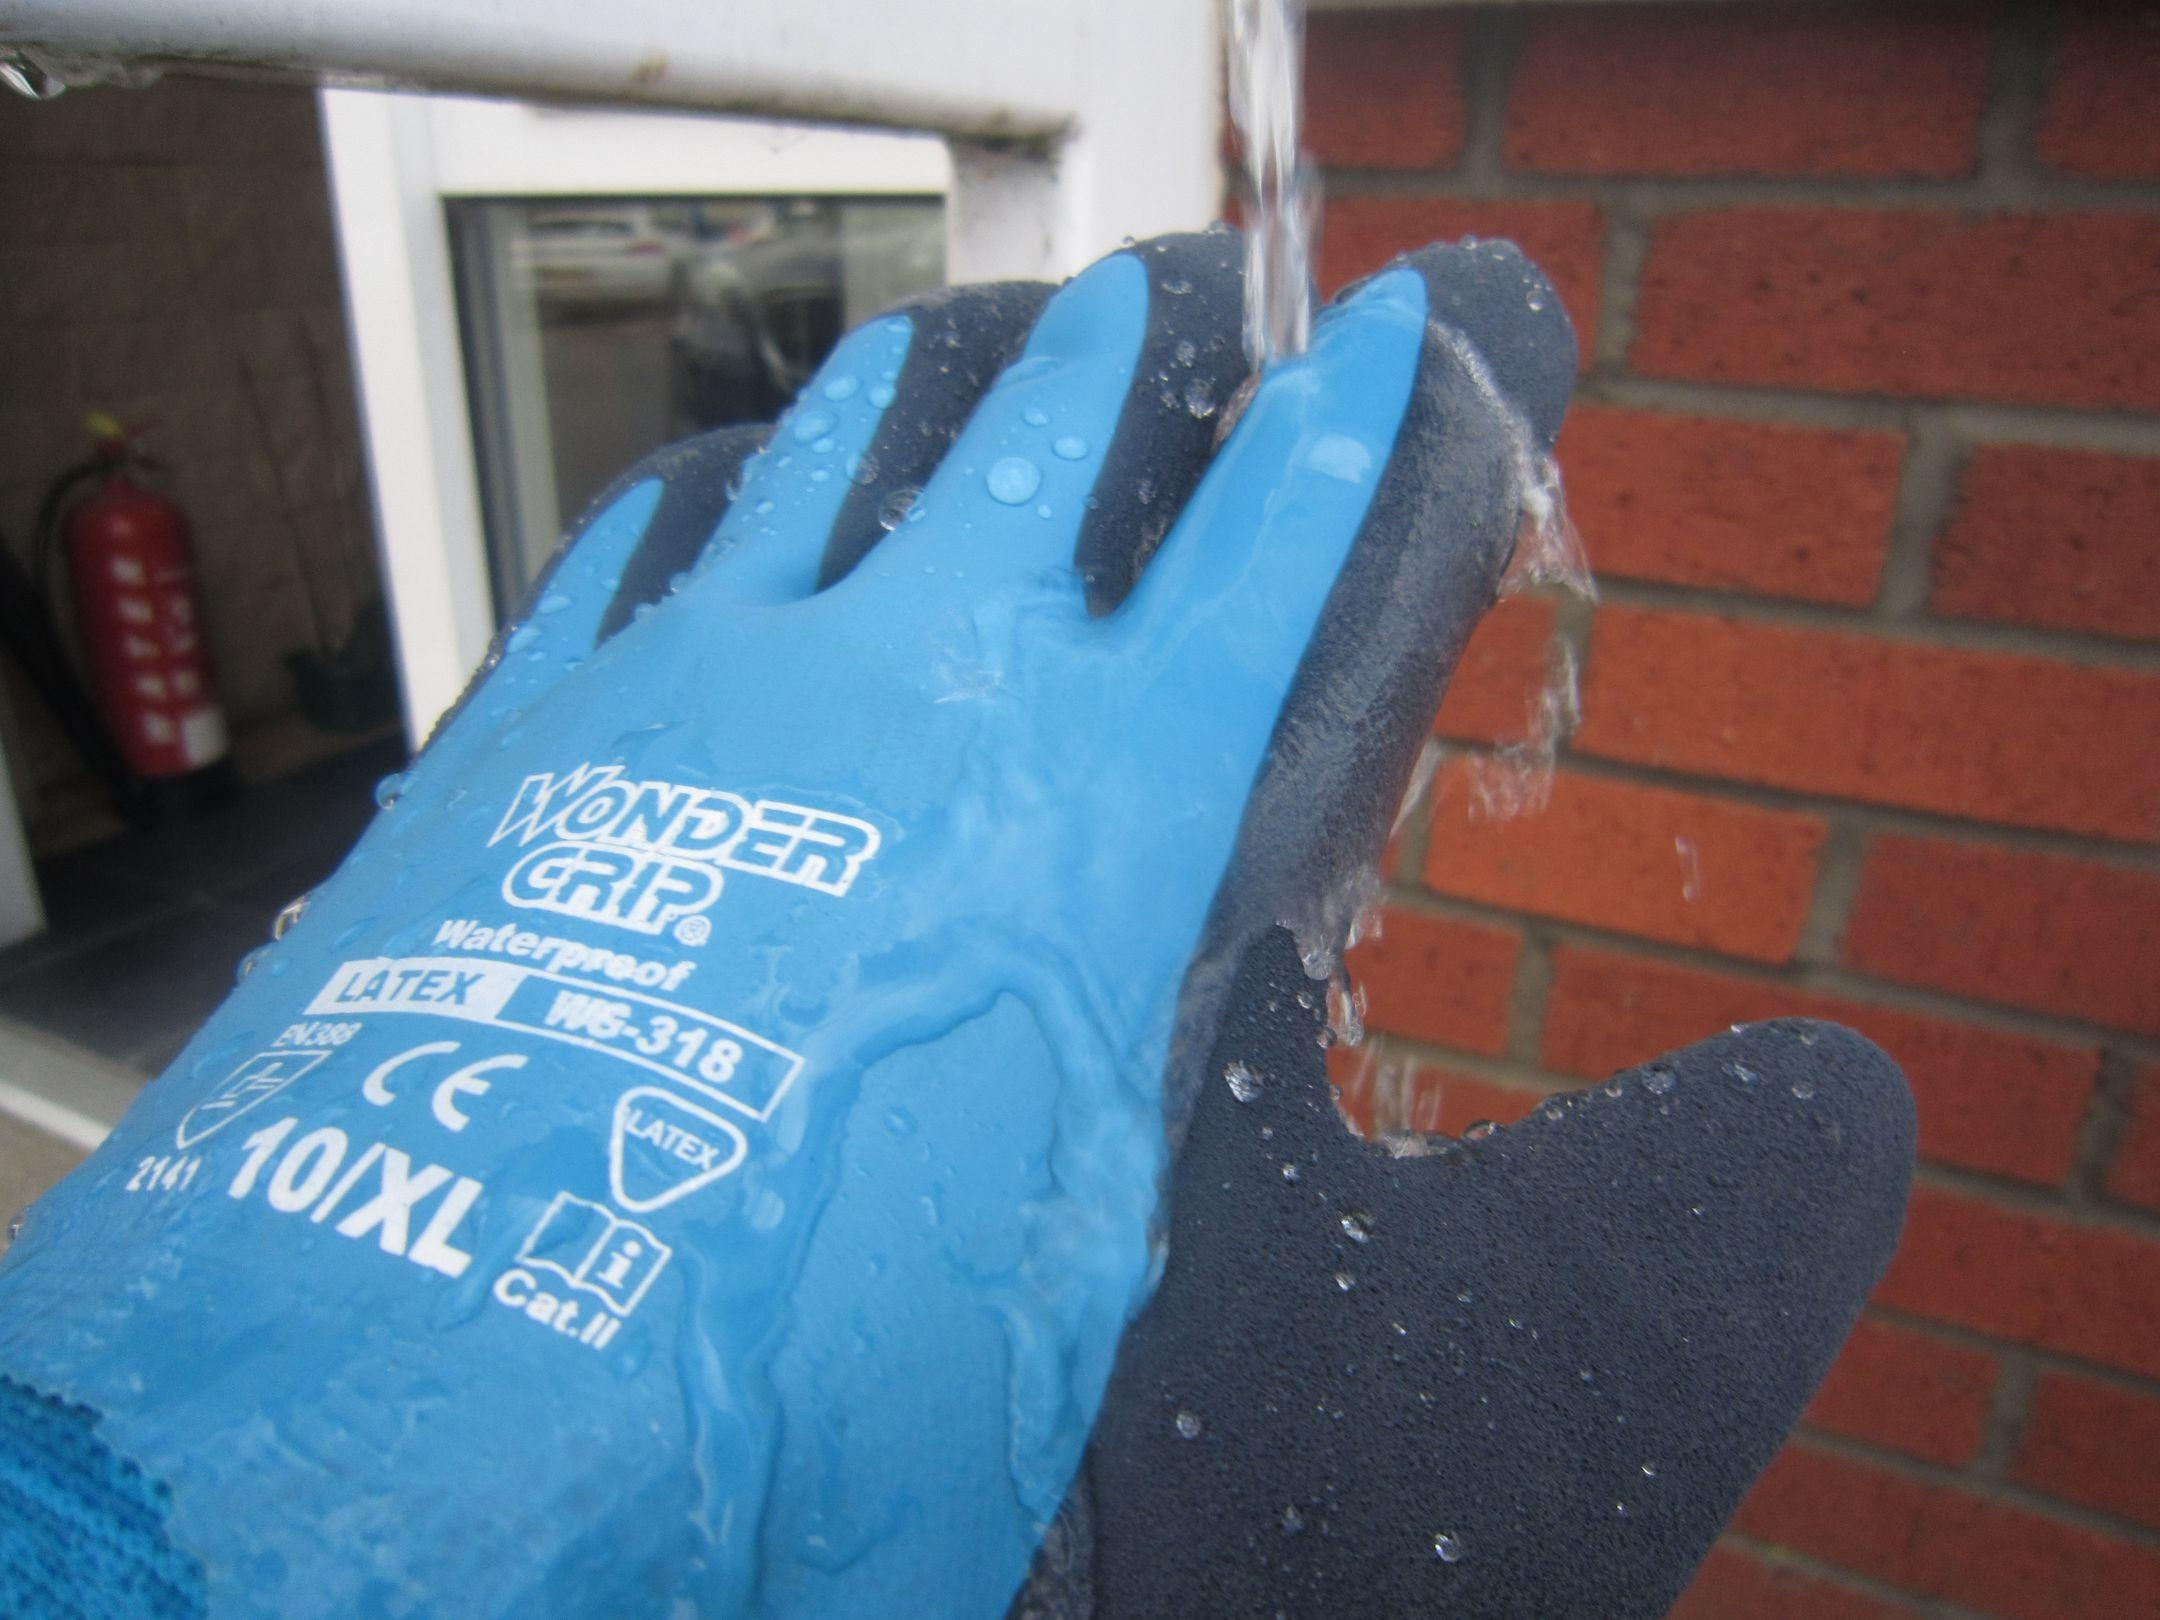 Wondergrip Premium Blue Waterproof Foam Latex Gloves